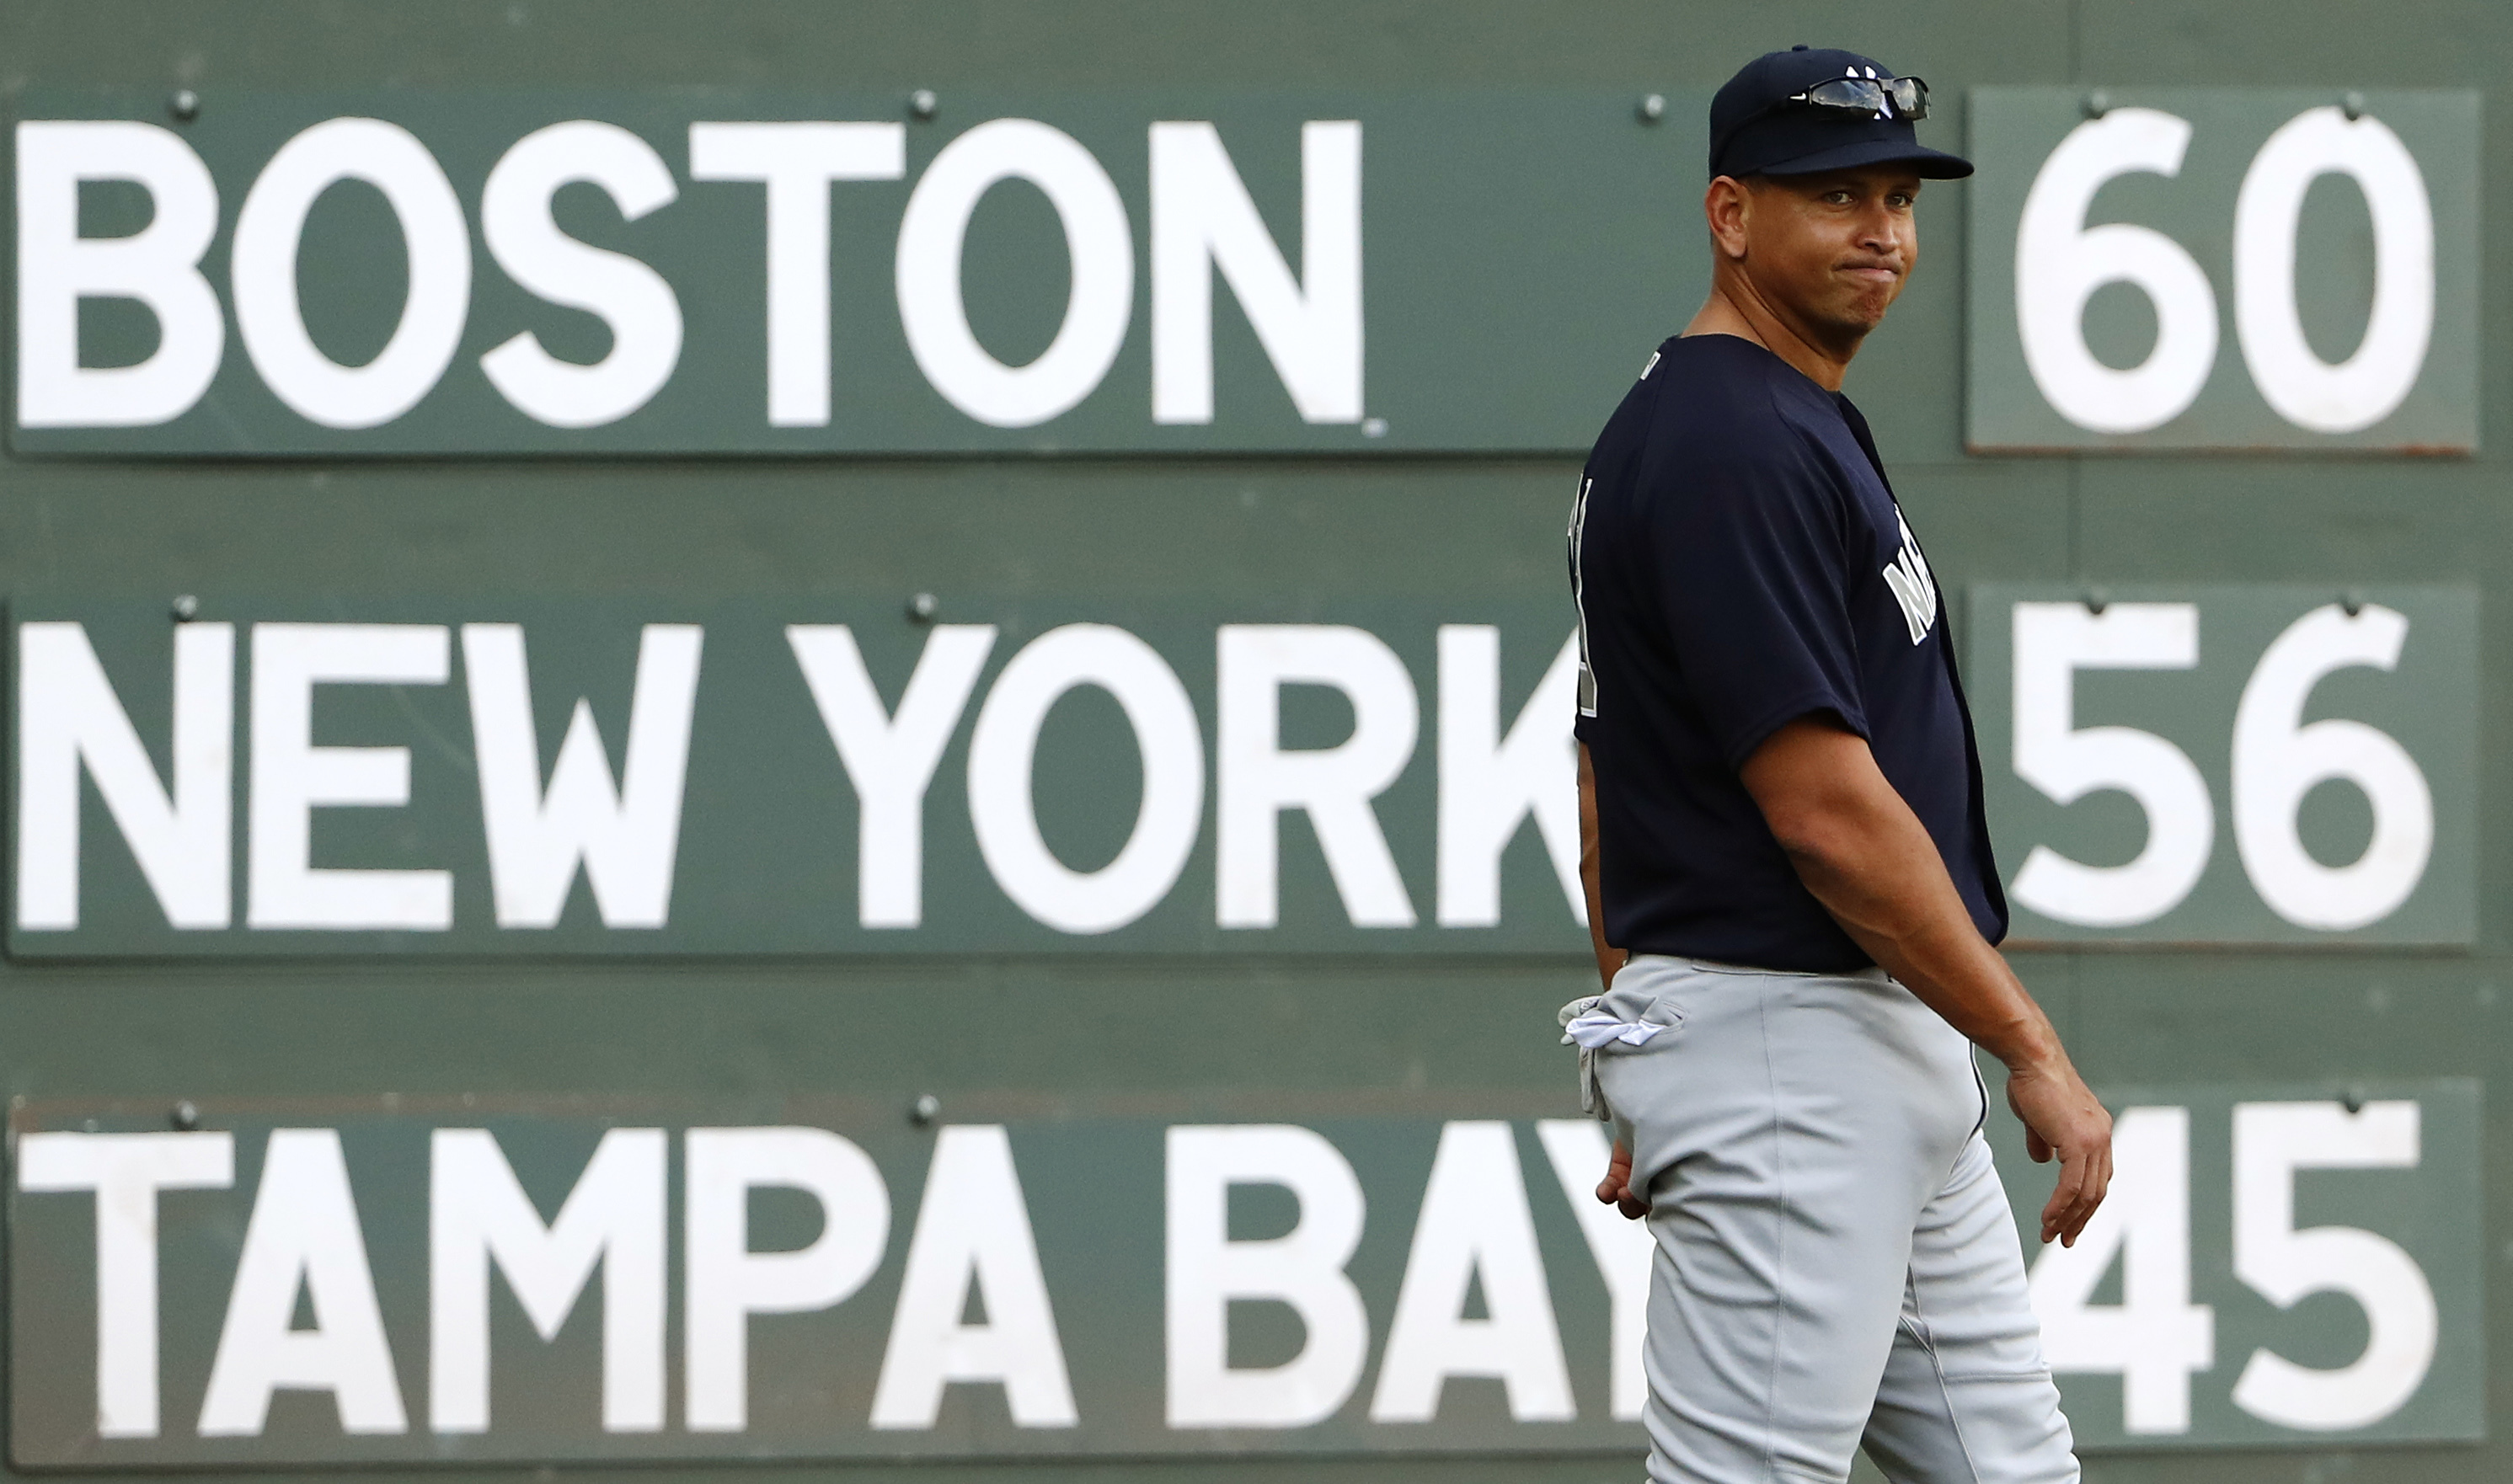 New York Yankees' Alex Rodriguez walks past the scoreboard before the Yankees' baseball game against the Boston Red Sox at Fenway Park in Boston on Tuesday, Aug. 9, 2016. (AP Photo/Winslow Townson)